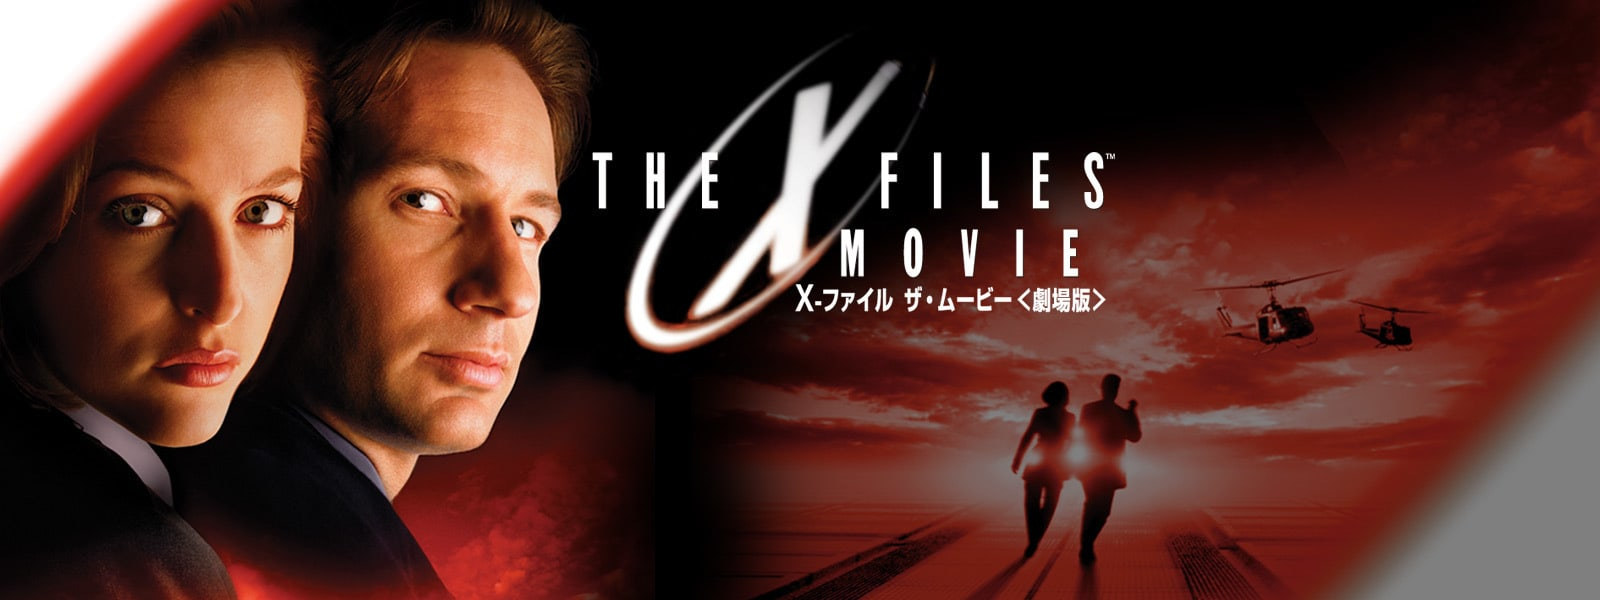 X-ファイル ザ・ムービー|X-Files, The Hero Object